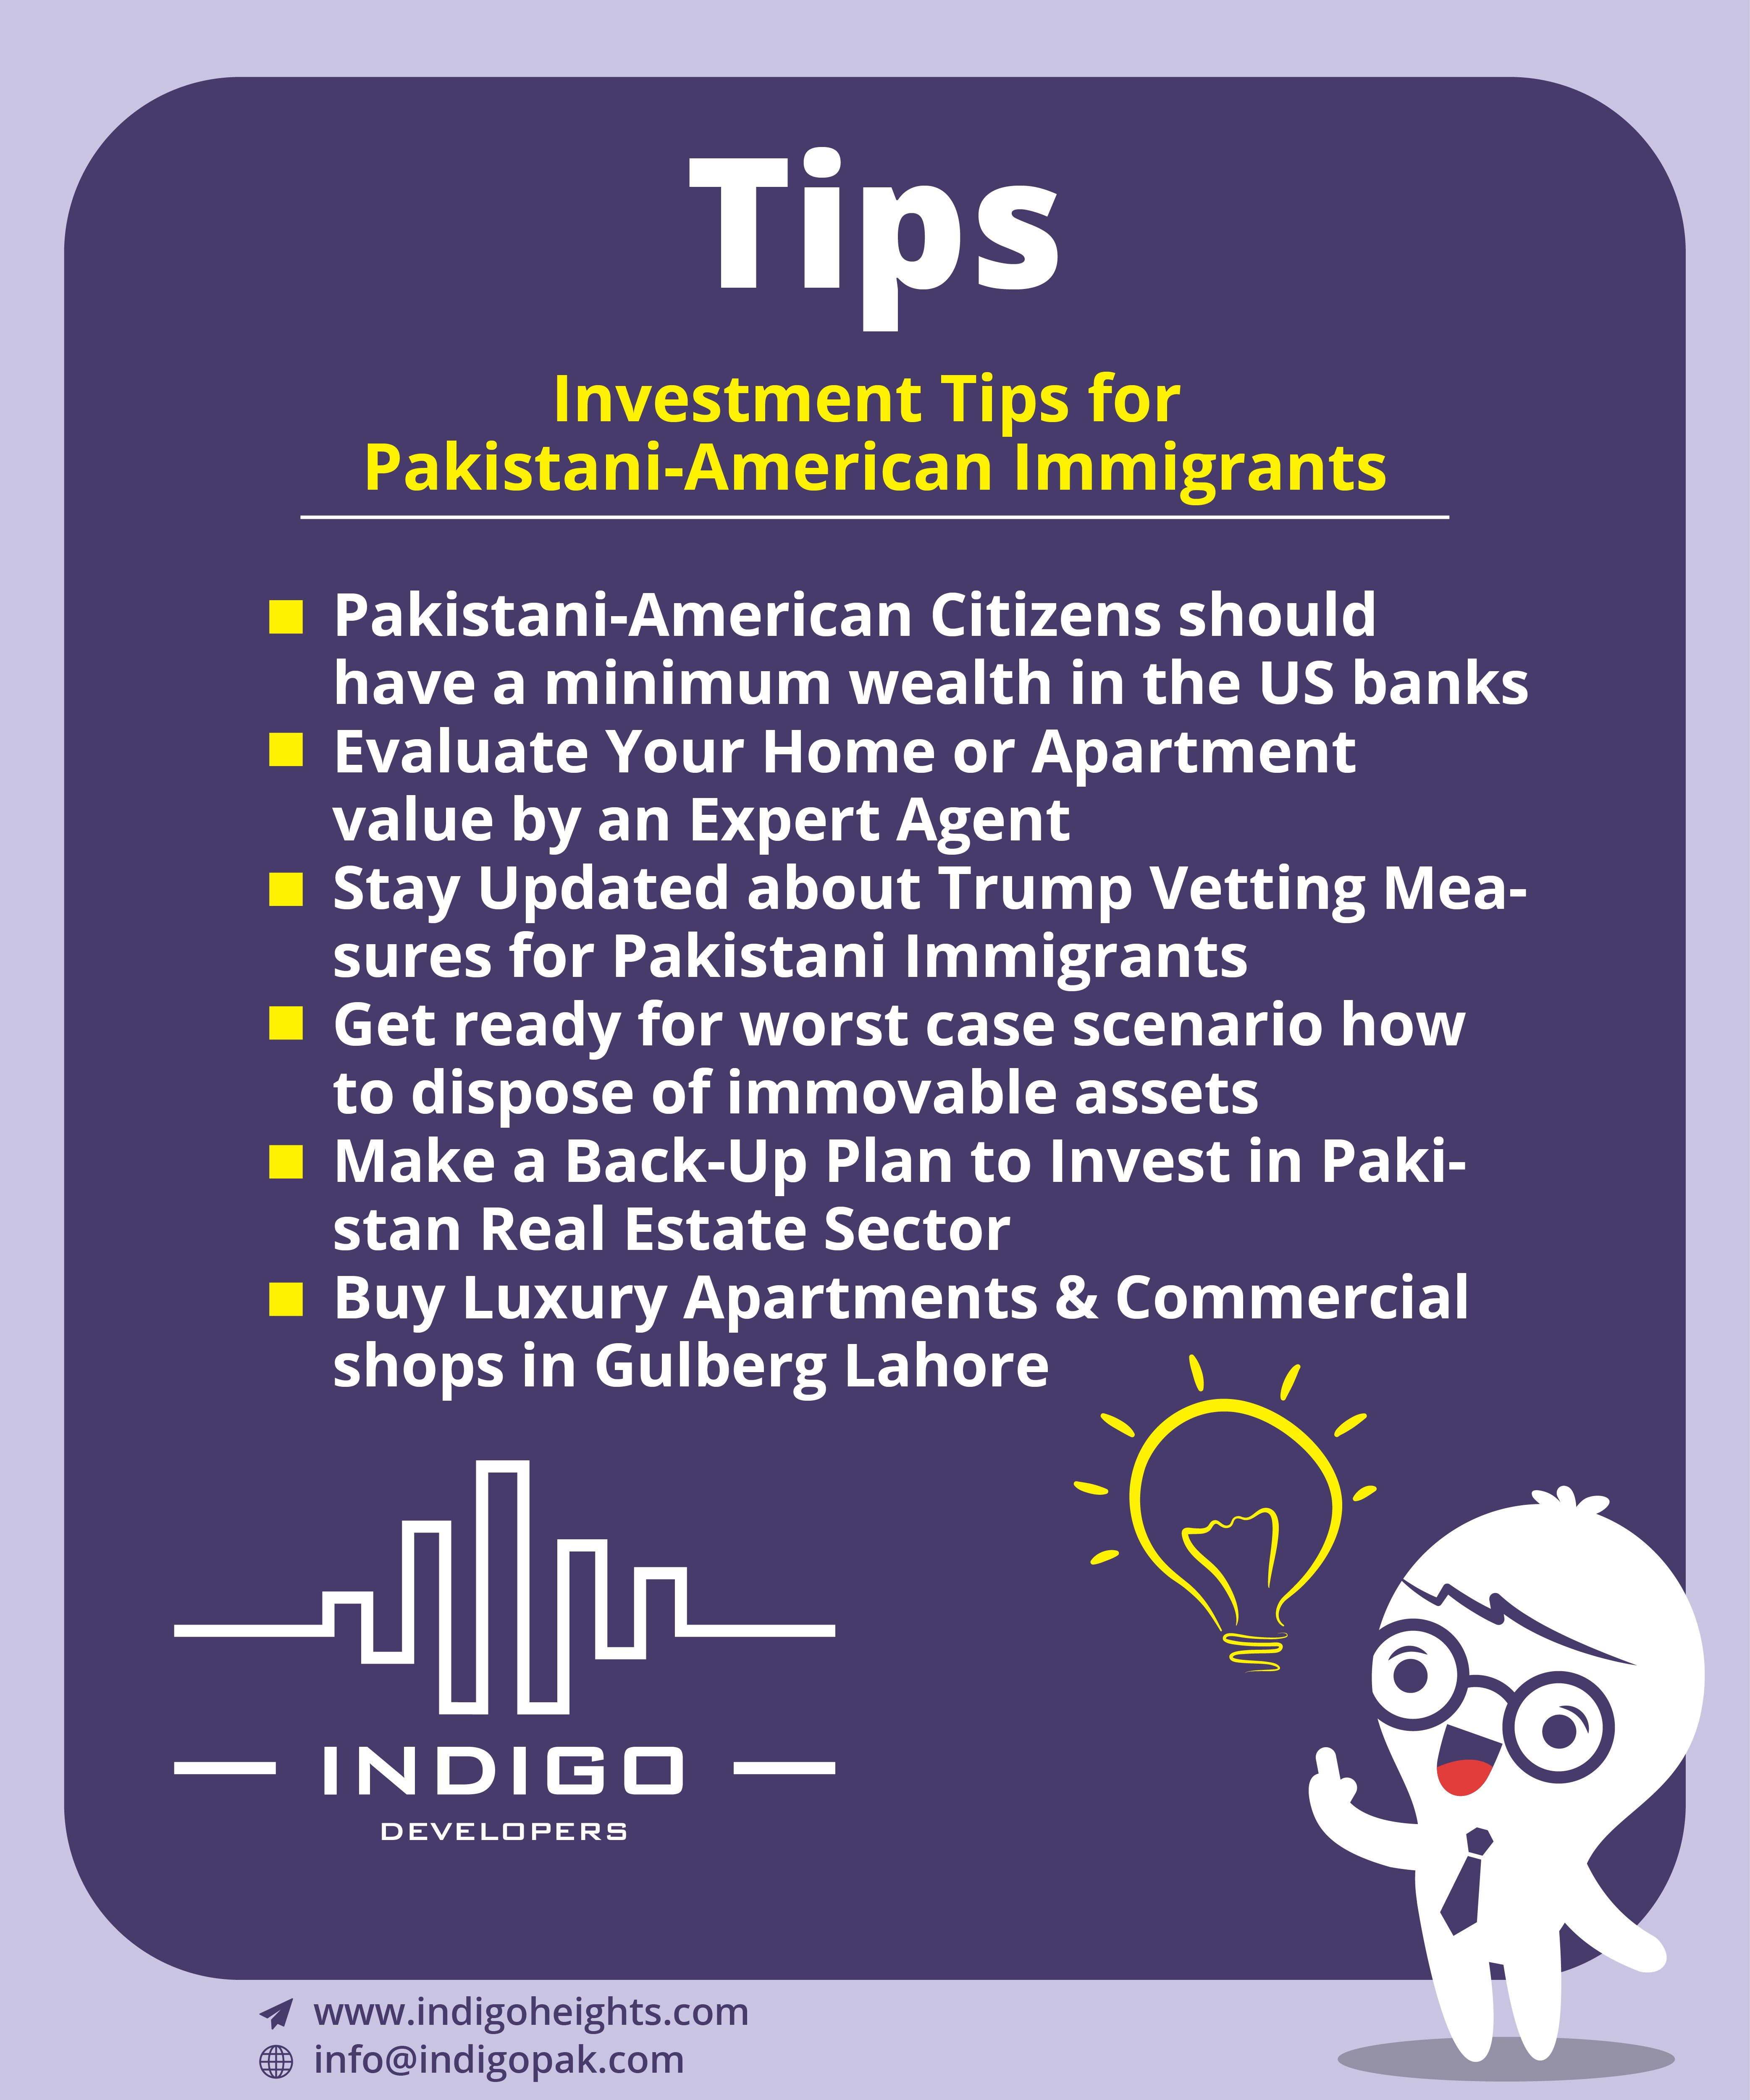 Investment Tips For Pakistani American Immigrants. #IndigoTips #AmericanPakistani #Investmenttips Click here website:www.indigoheights.com